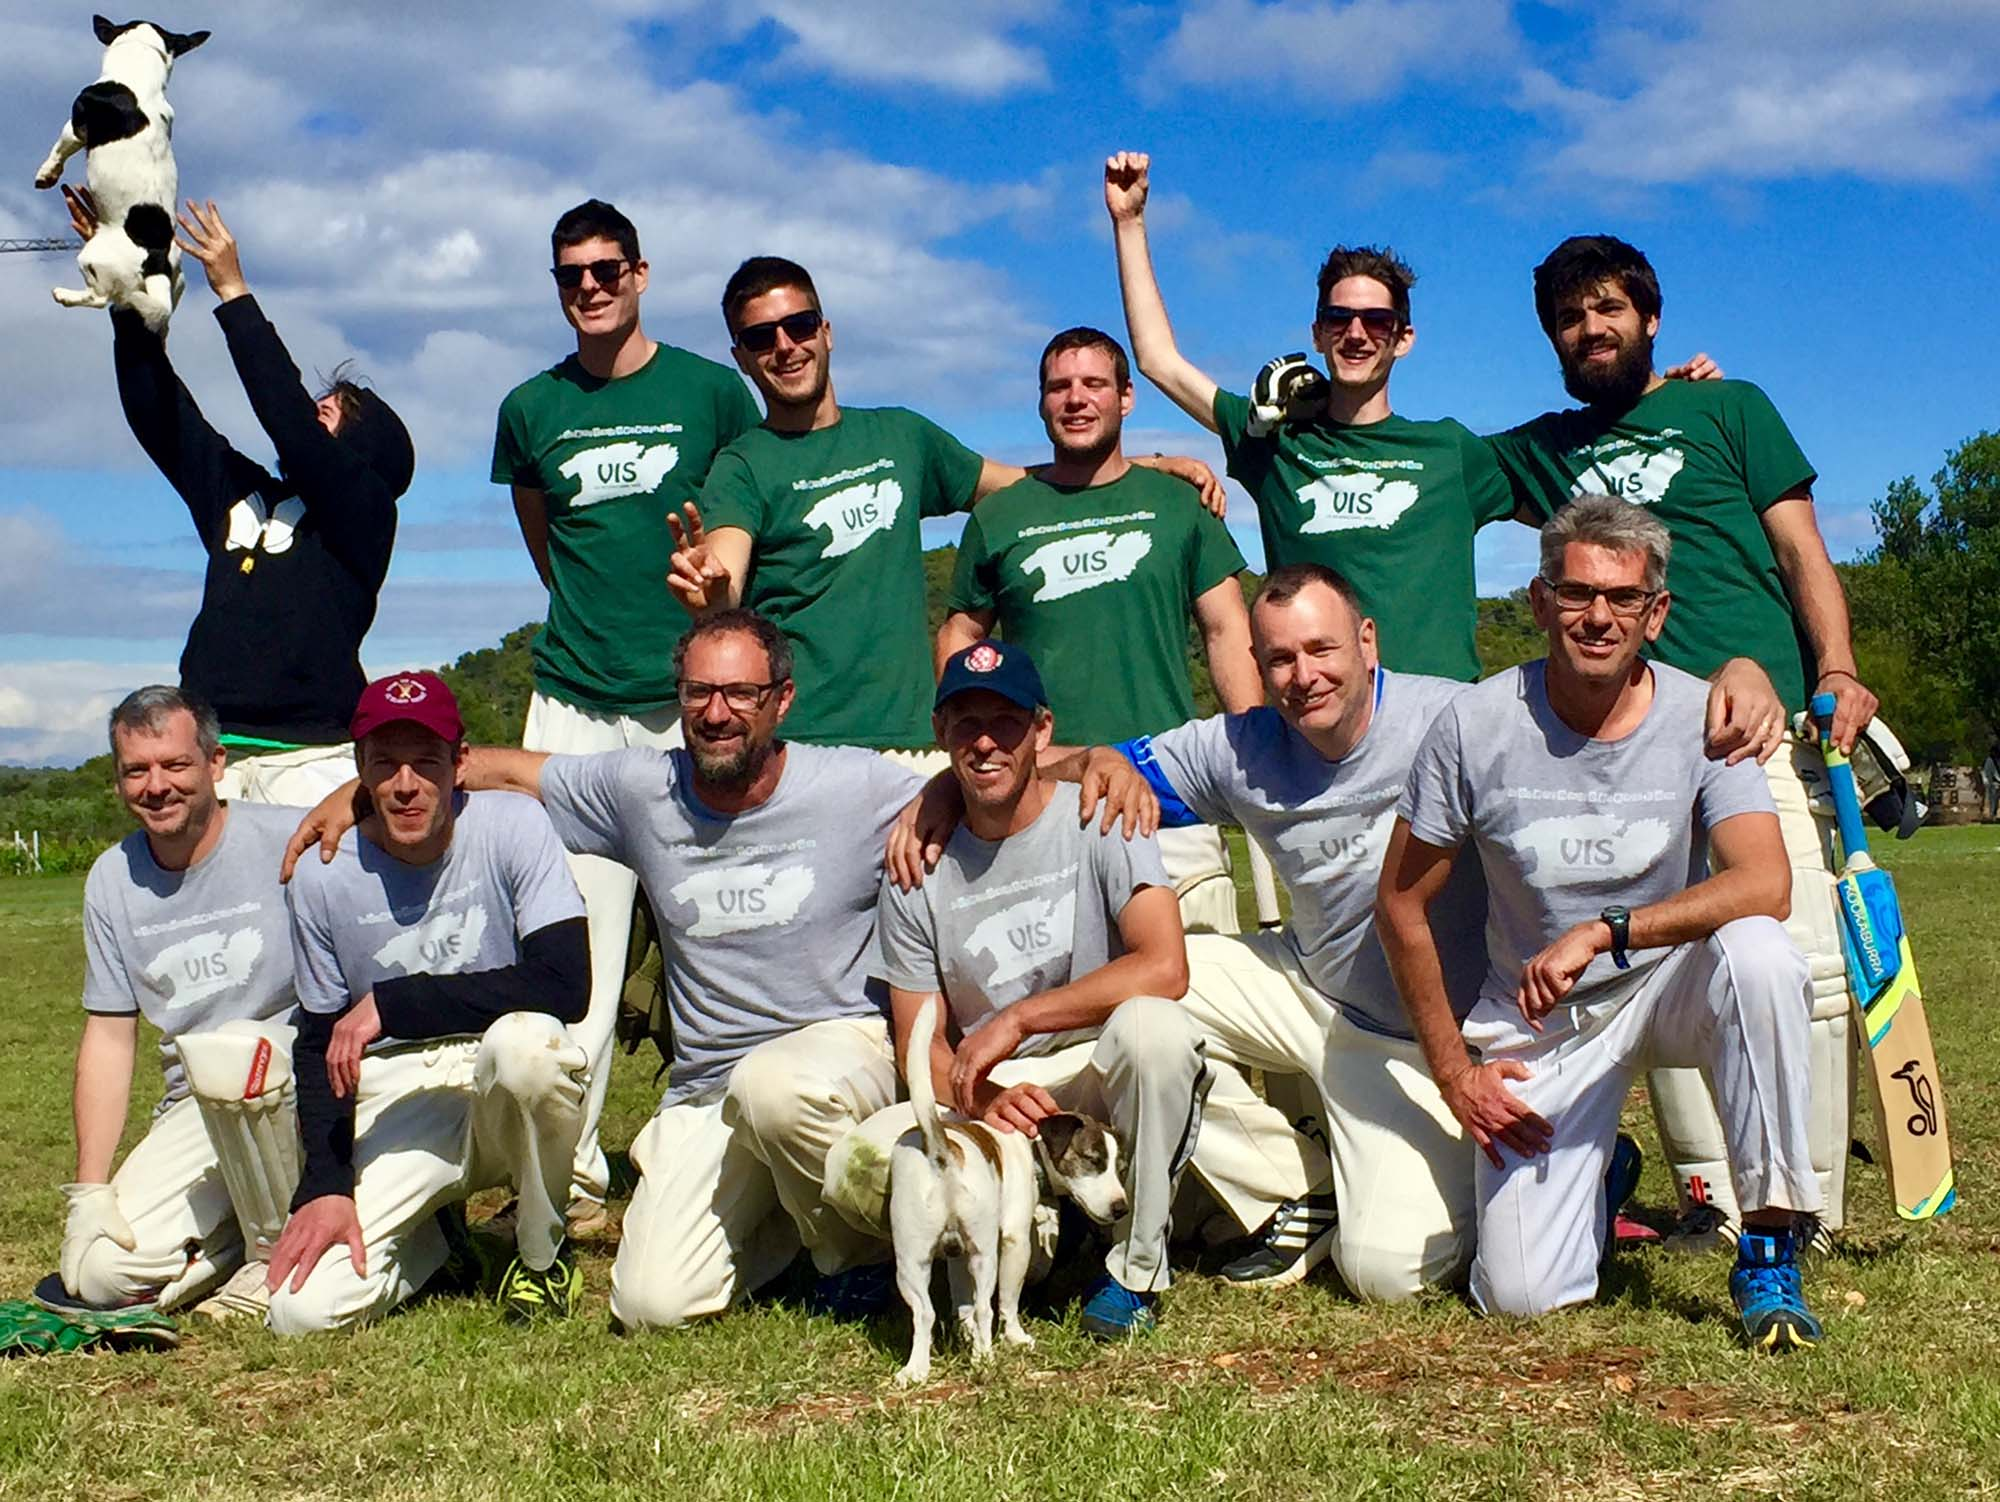 Vis island cricket team